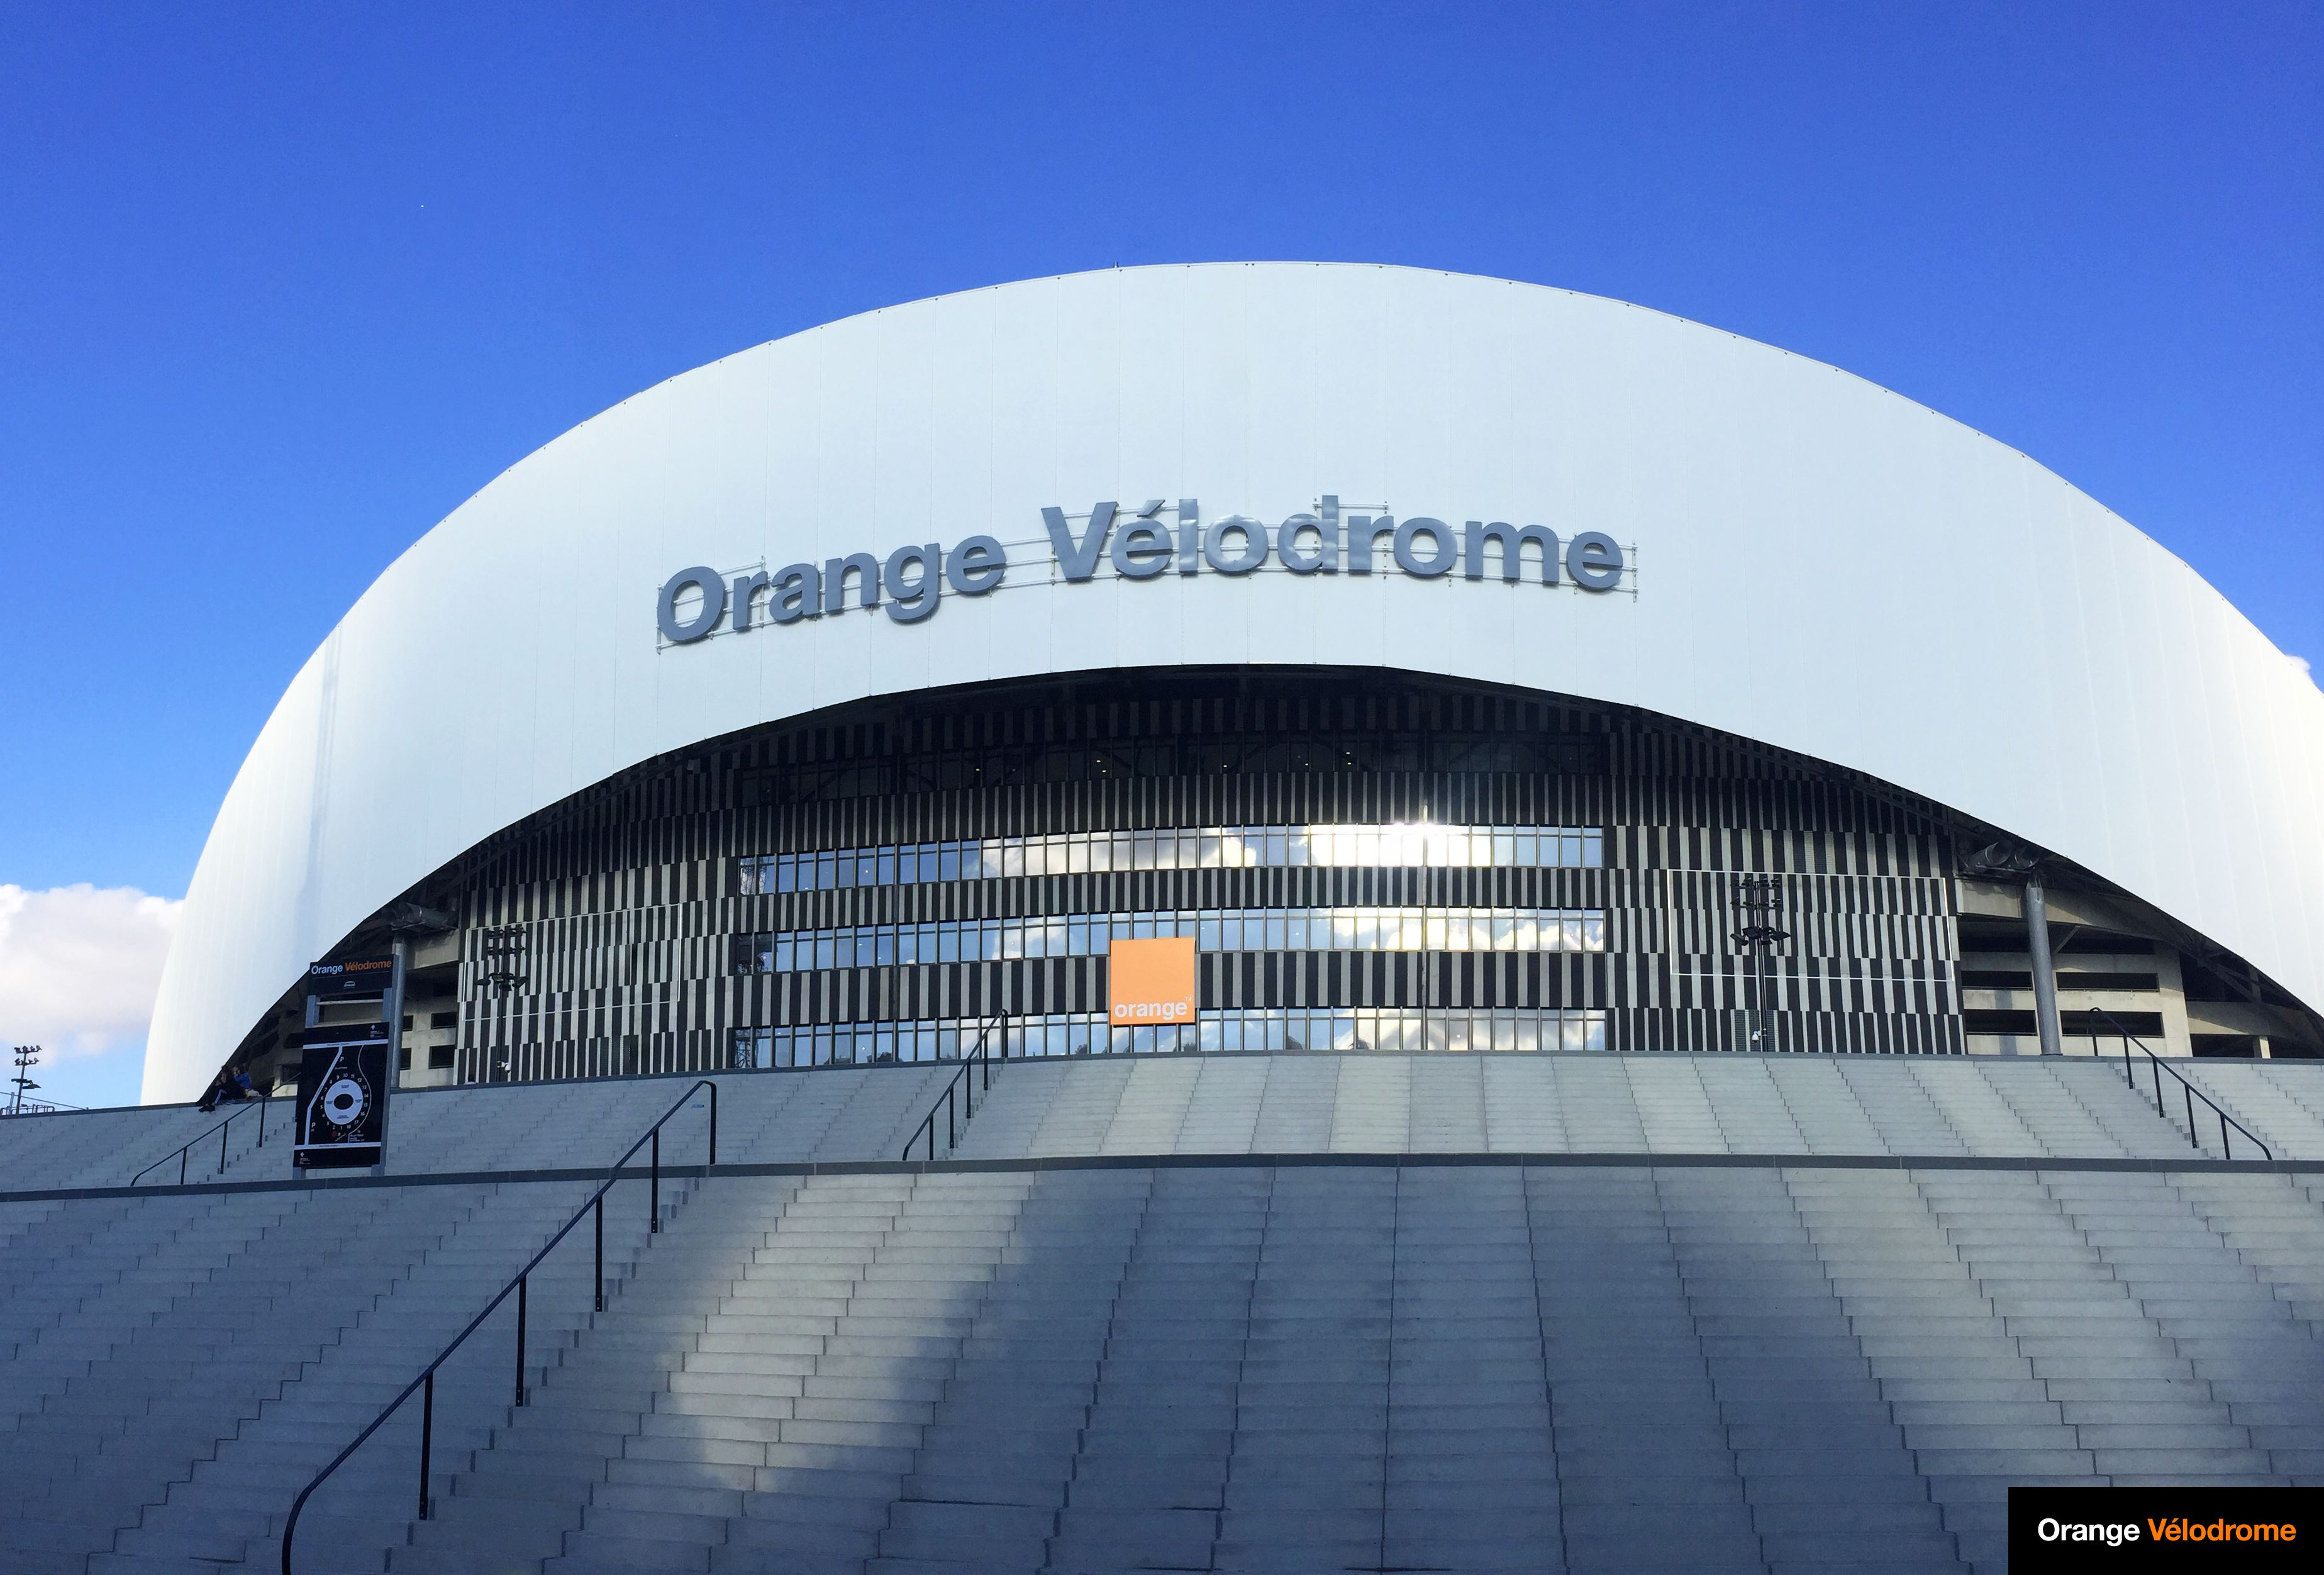 Visit Orange Velodrome